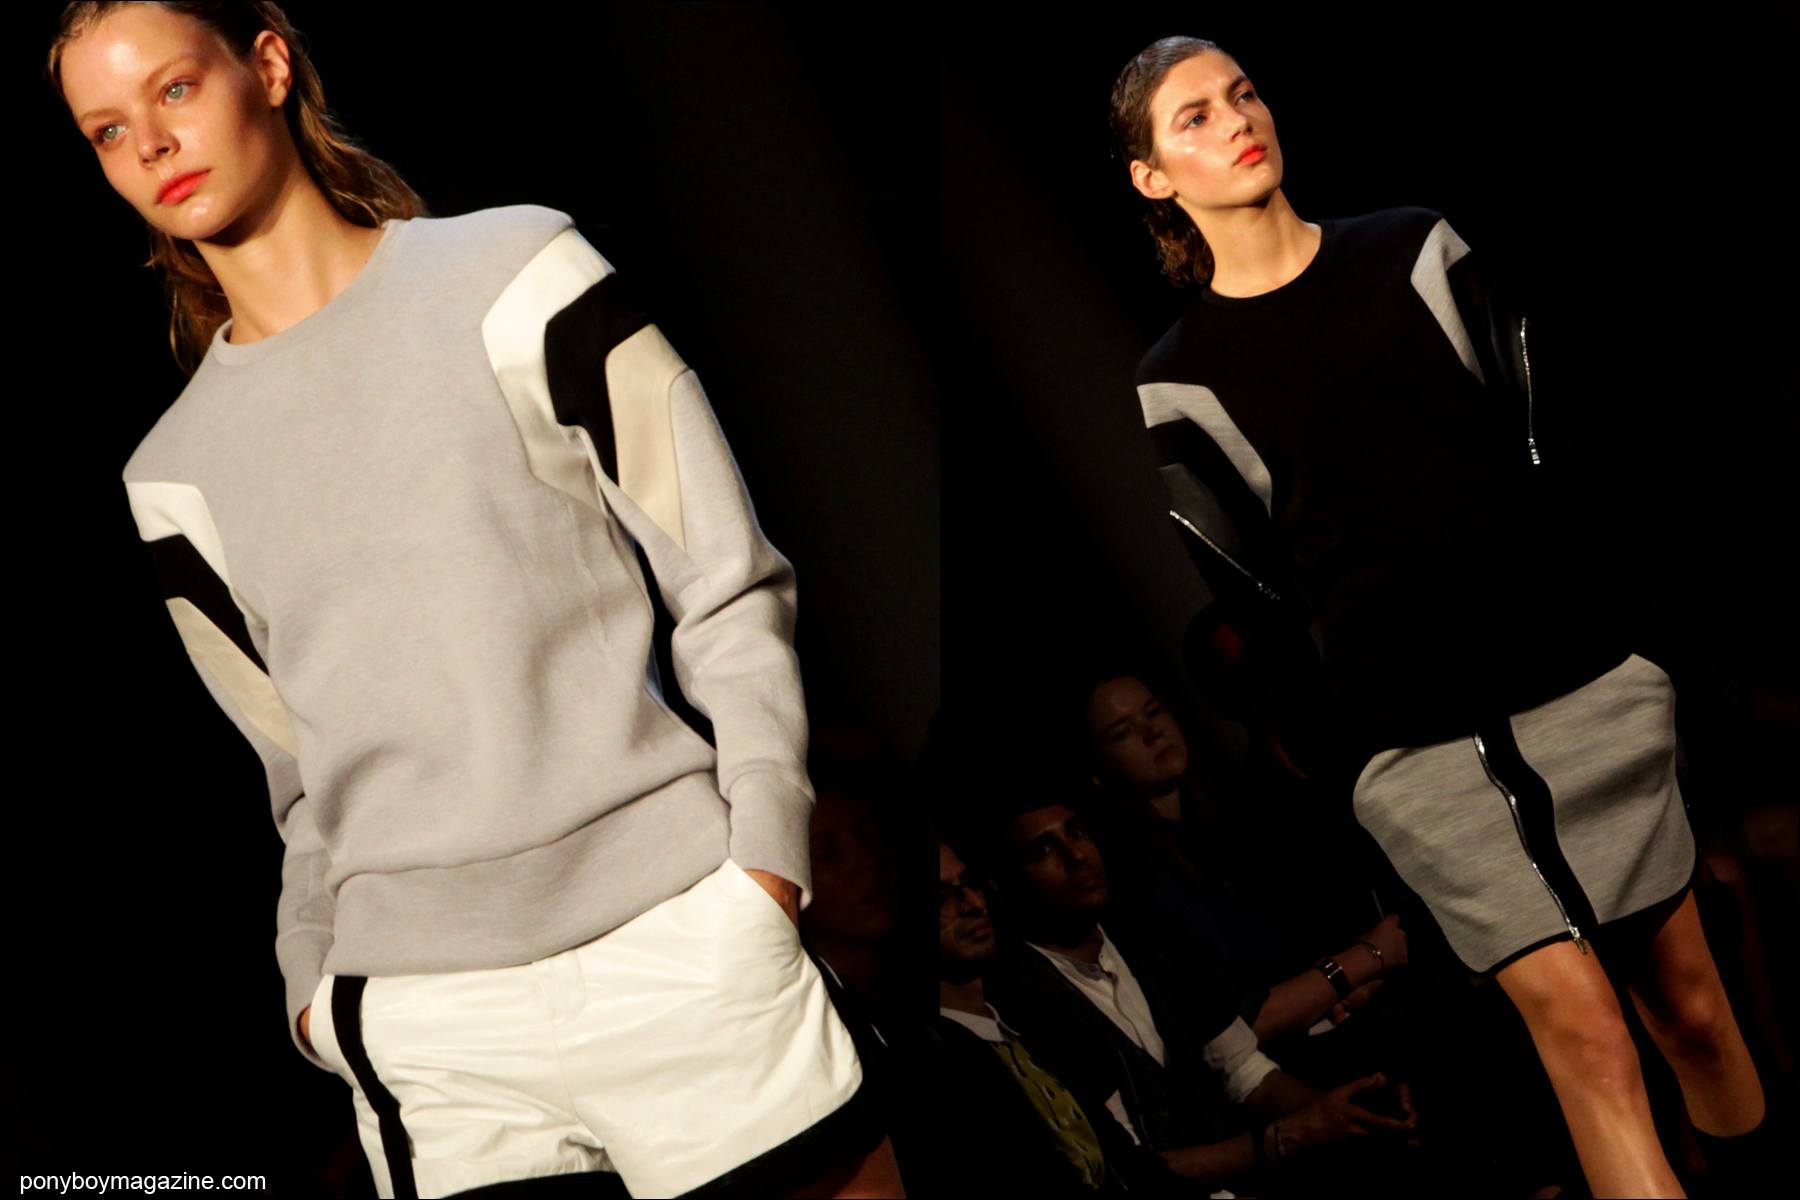 The debut of Tim Coppens S/S 2015 womenswear in New York City. Photos by Alexander Thompson for Ponyboy Magazine.